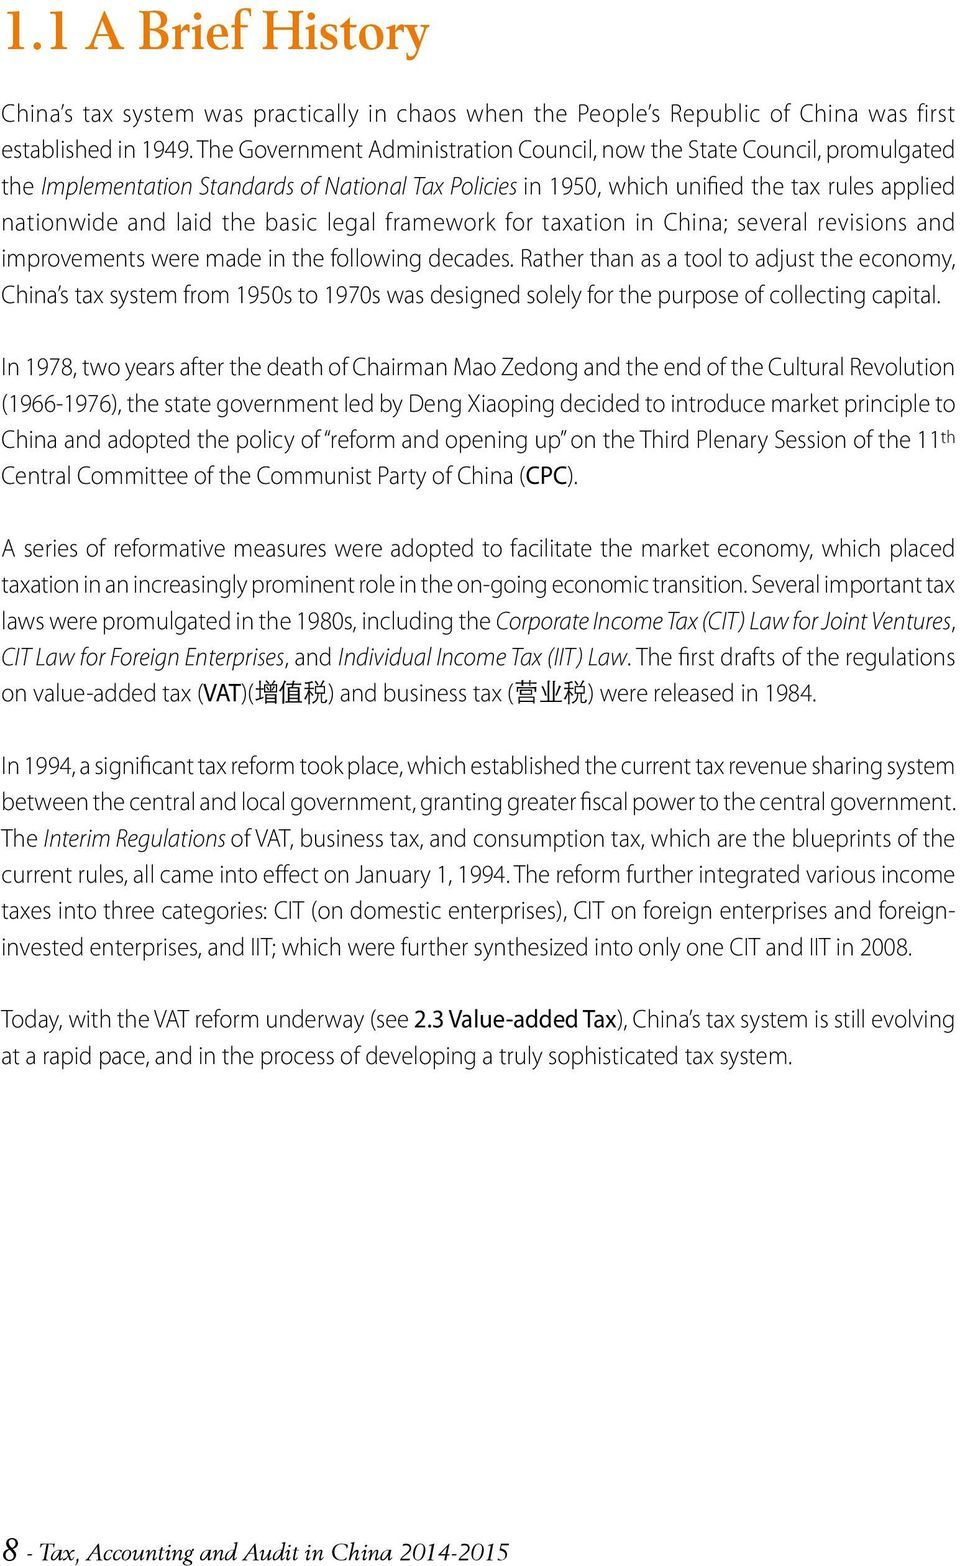 framework for taxation in China; several revisions and improvements were made in the following decades.